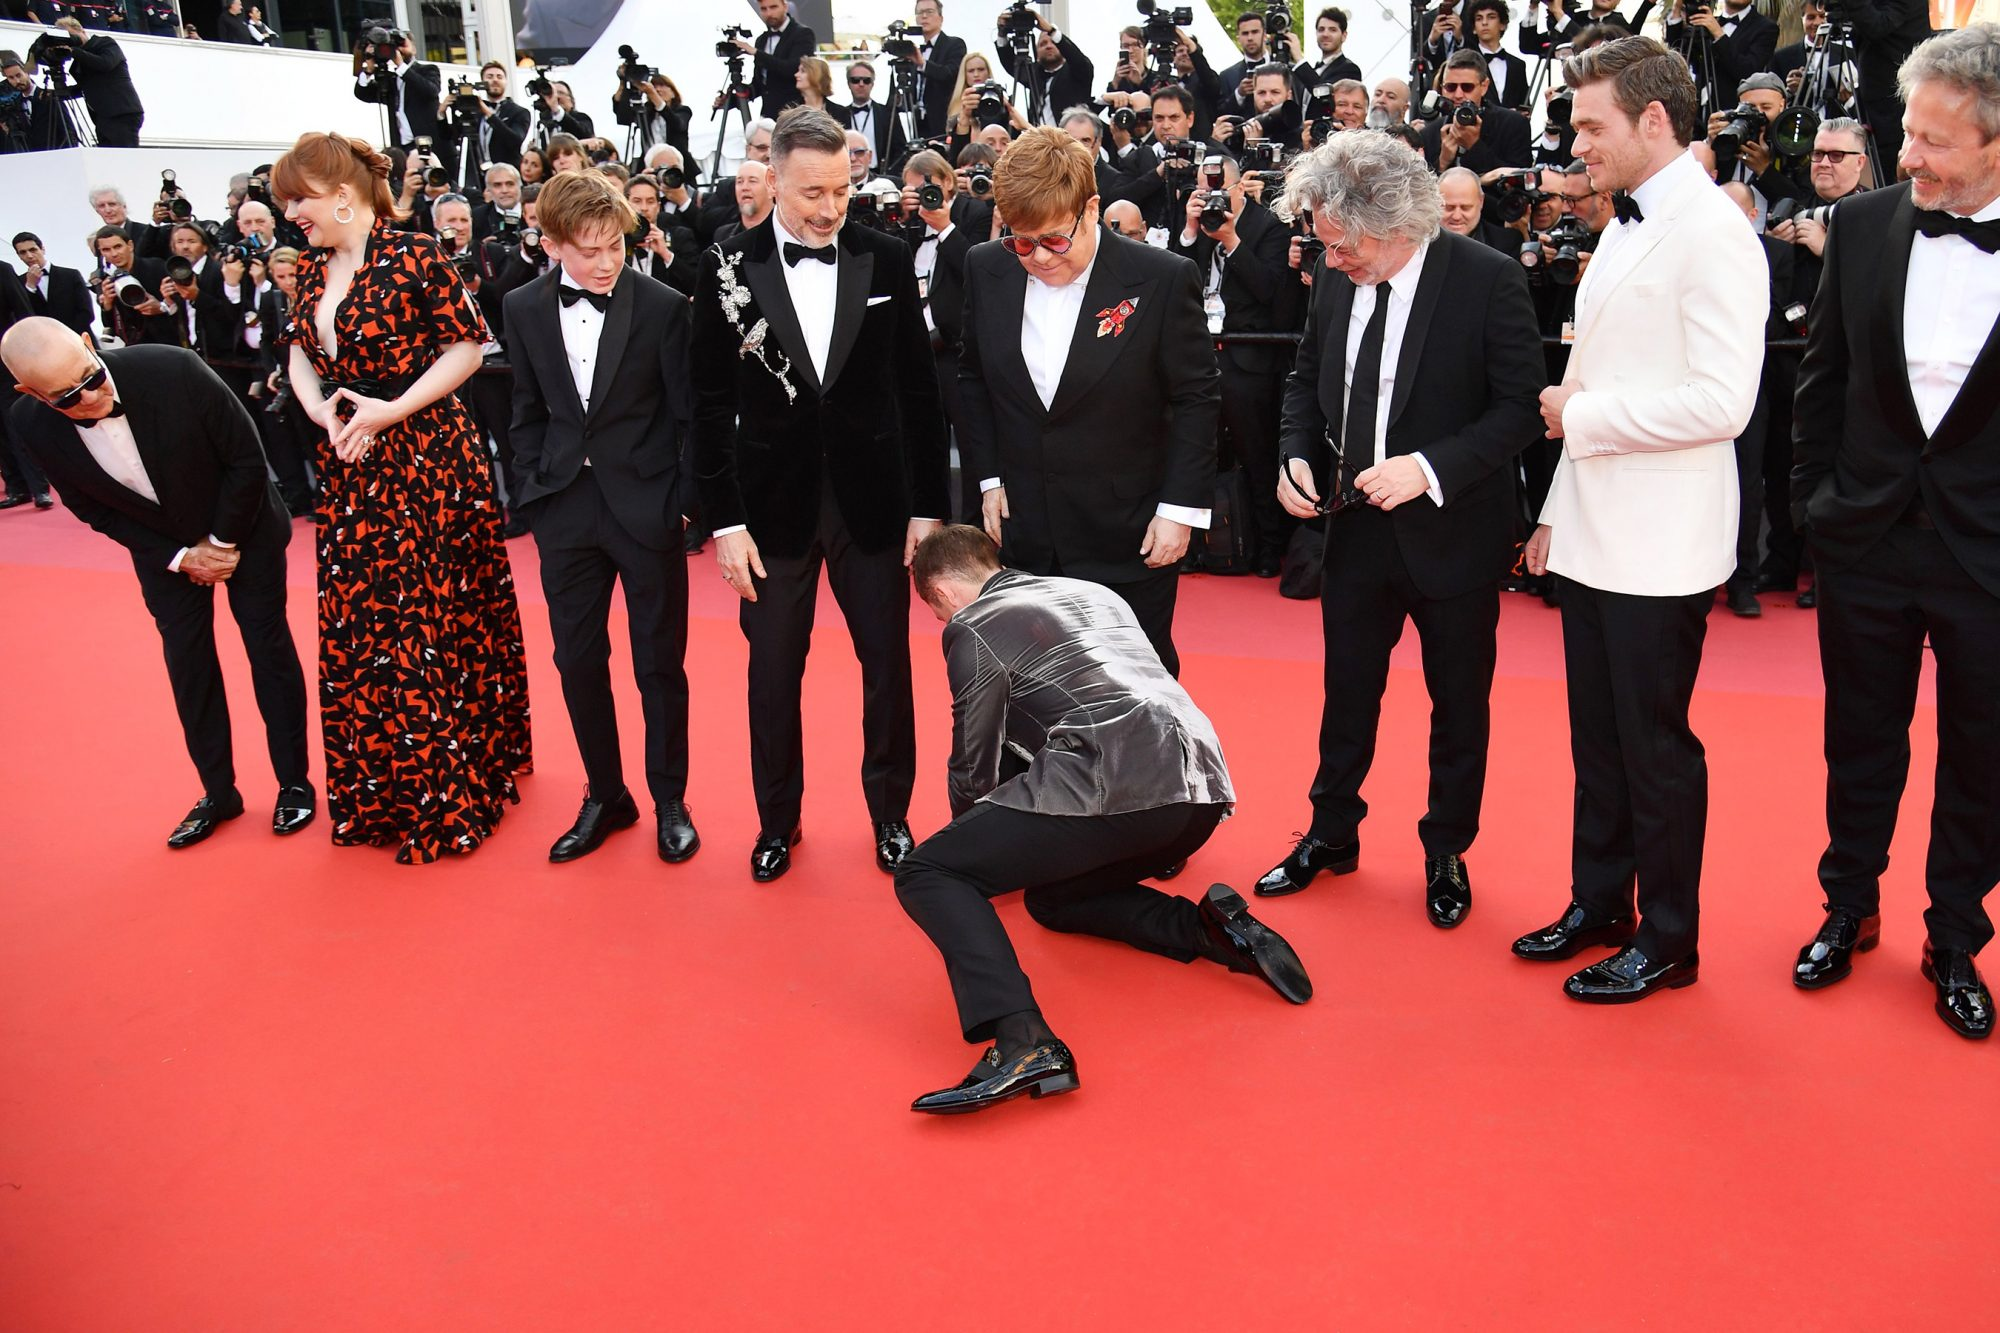 Taron Egerton fixes Elton John's pants as they arrive for the screening of 'Rocketman' during the 72nd annual Cannes Film Festival, in Cannes, France, 16 May 2019.